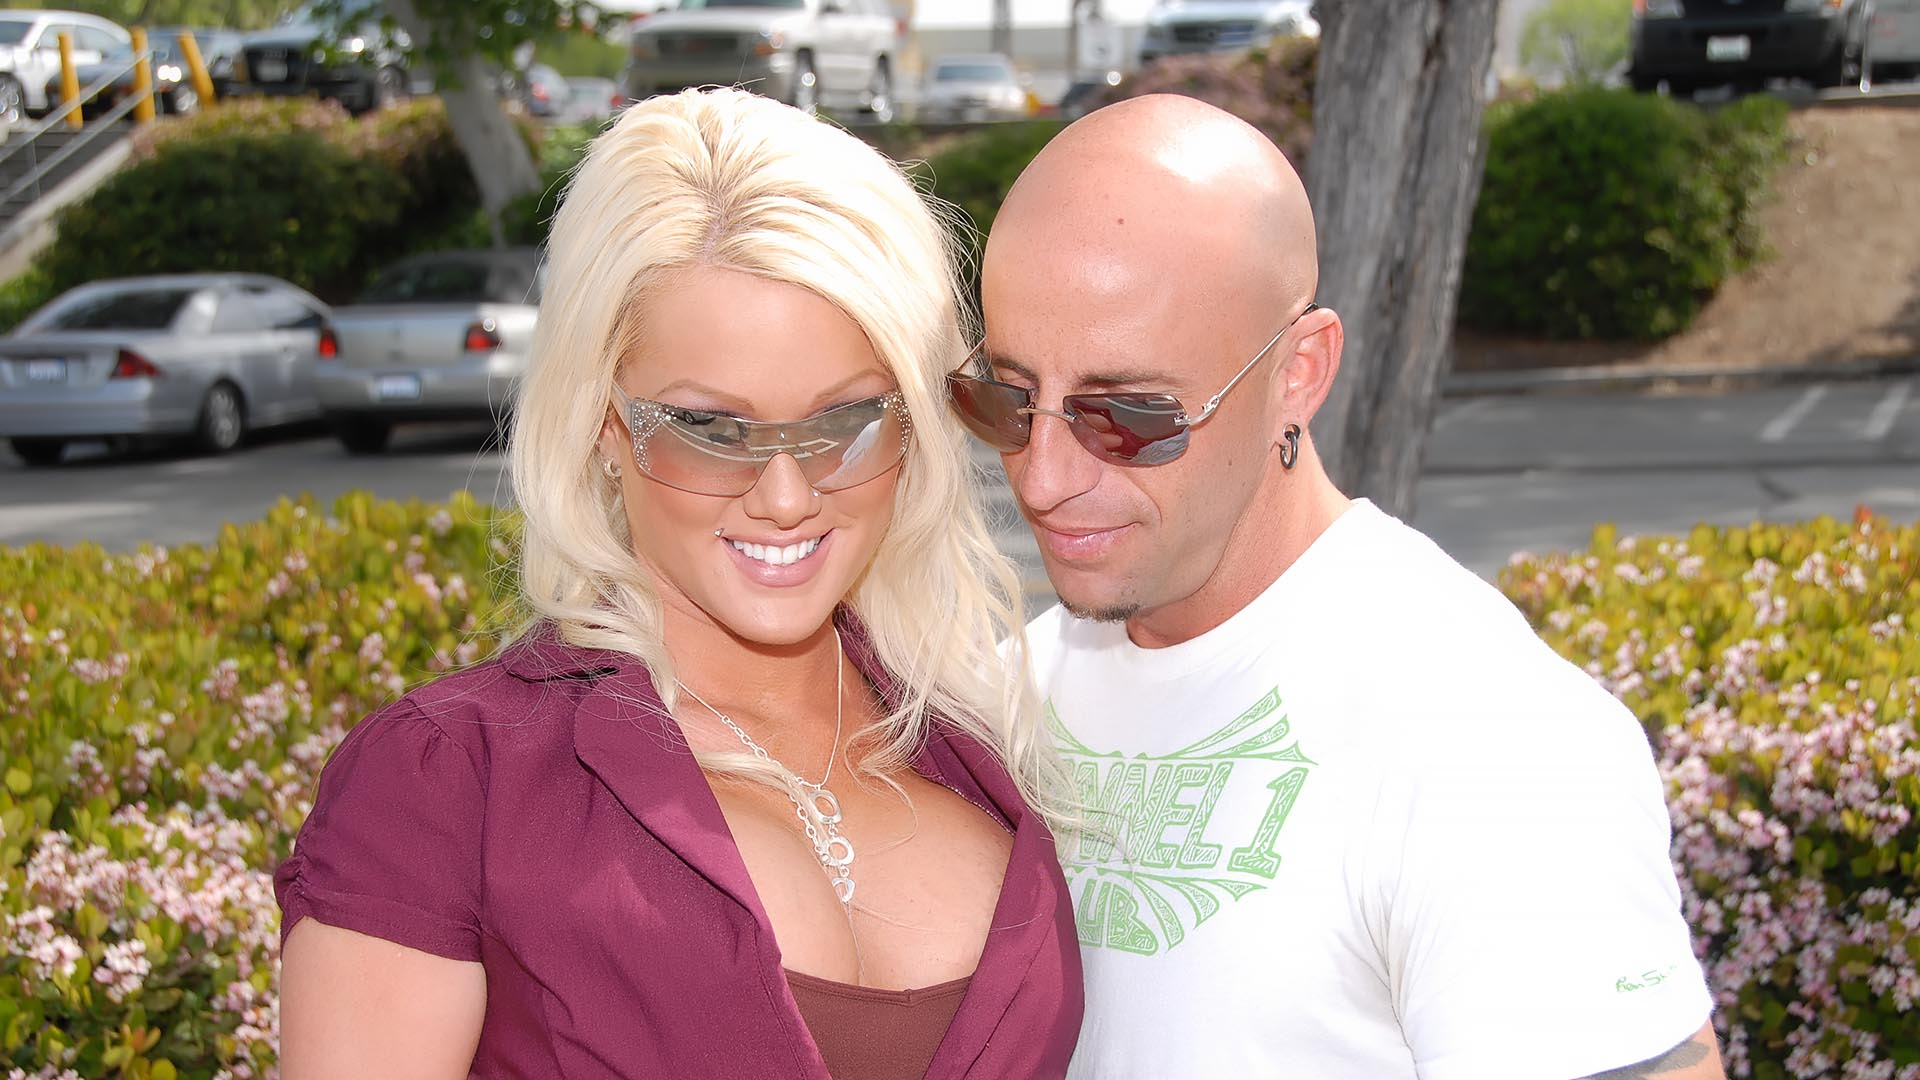 His Bald Head Got Lost Between Her Unbelievably Huge Tits